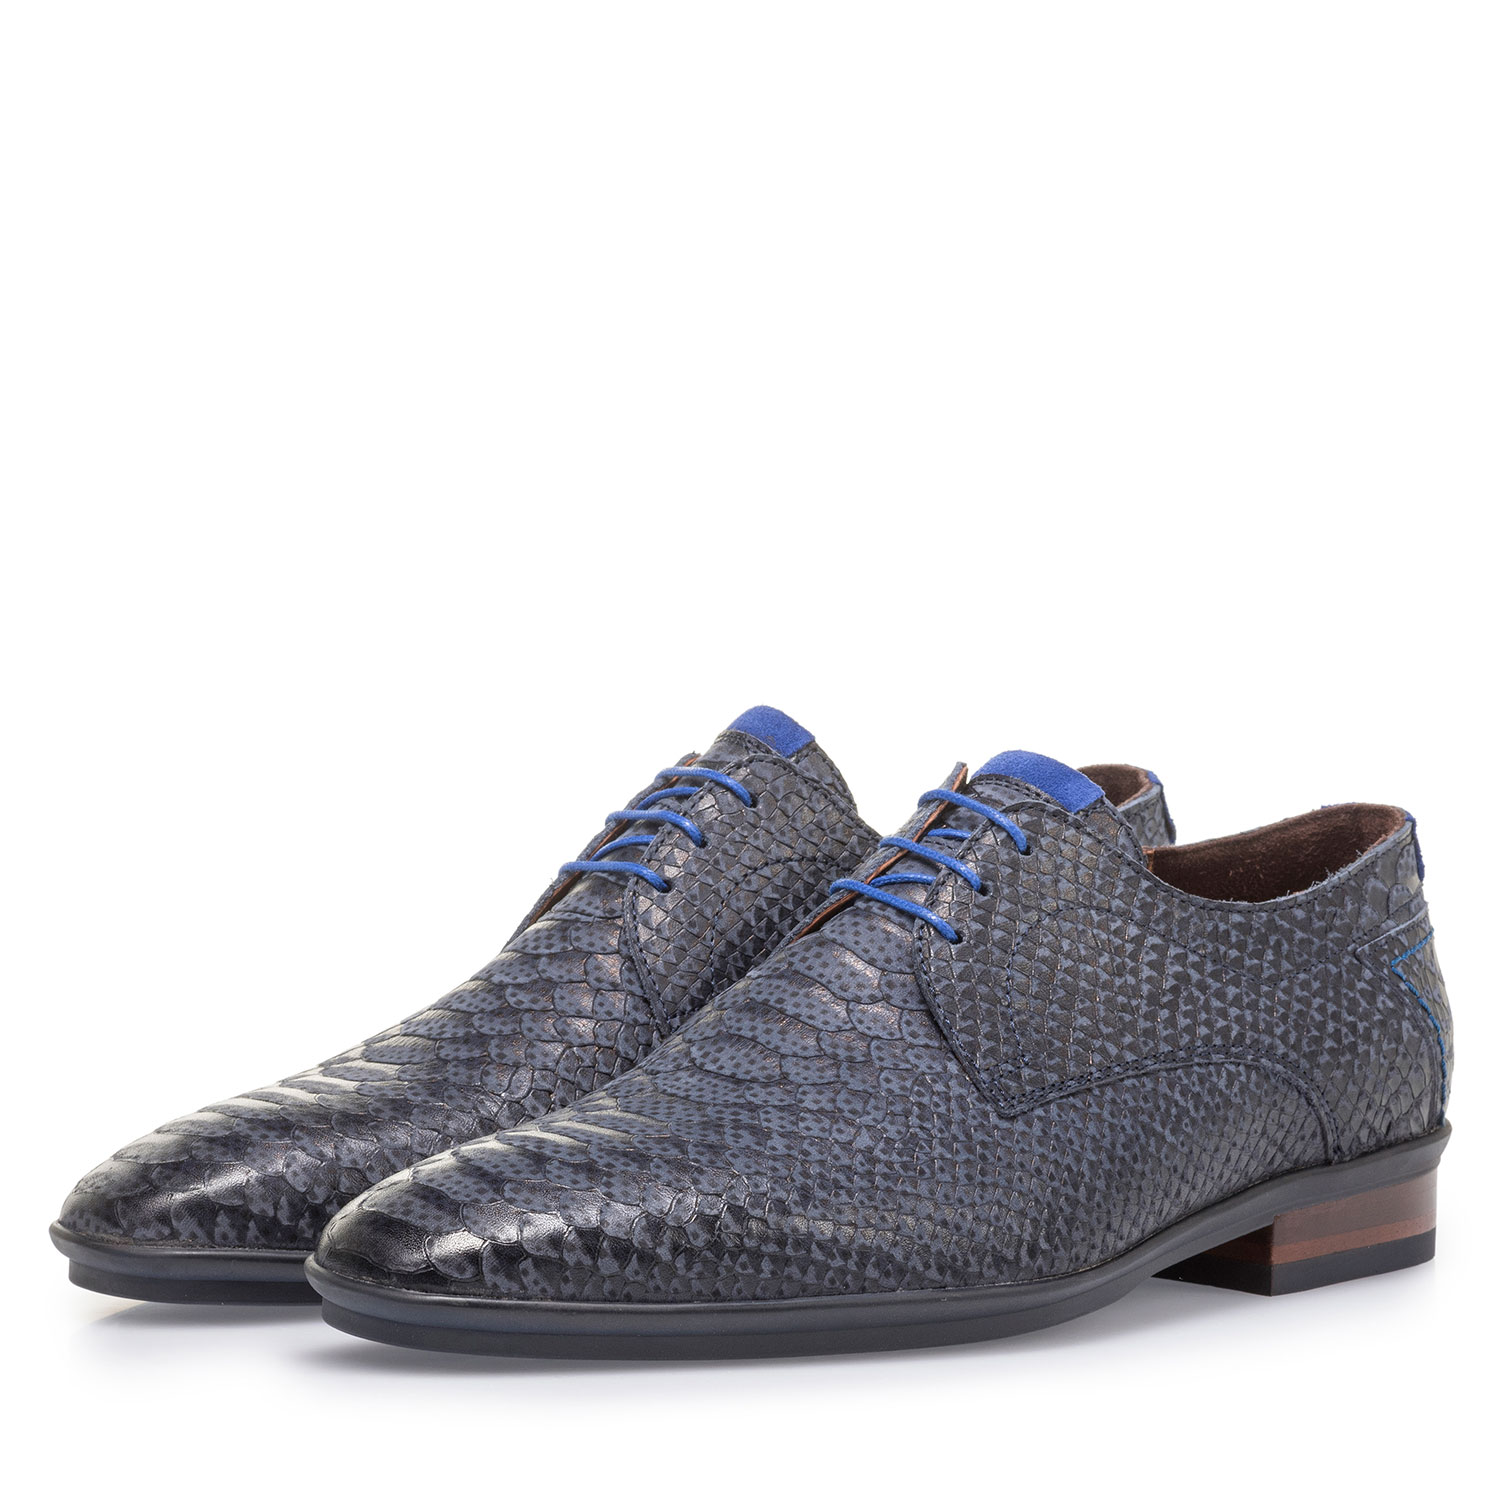 18441/19 - Dark blue nubuck leather lace shoe with snake print